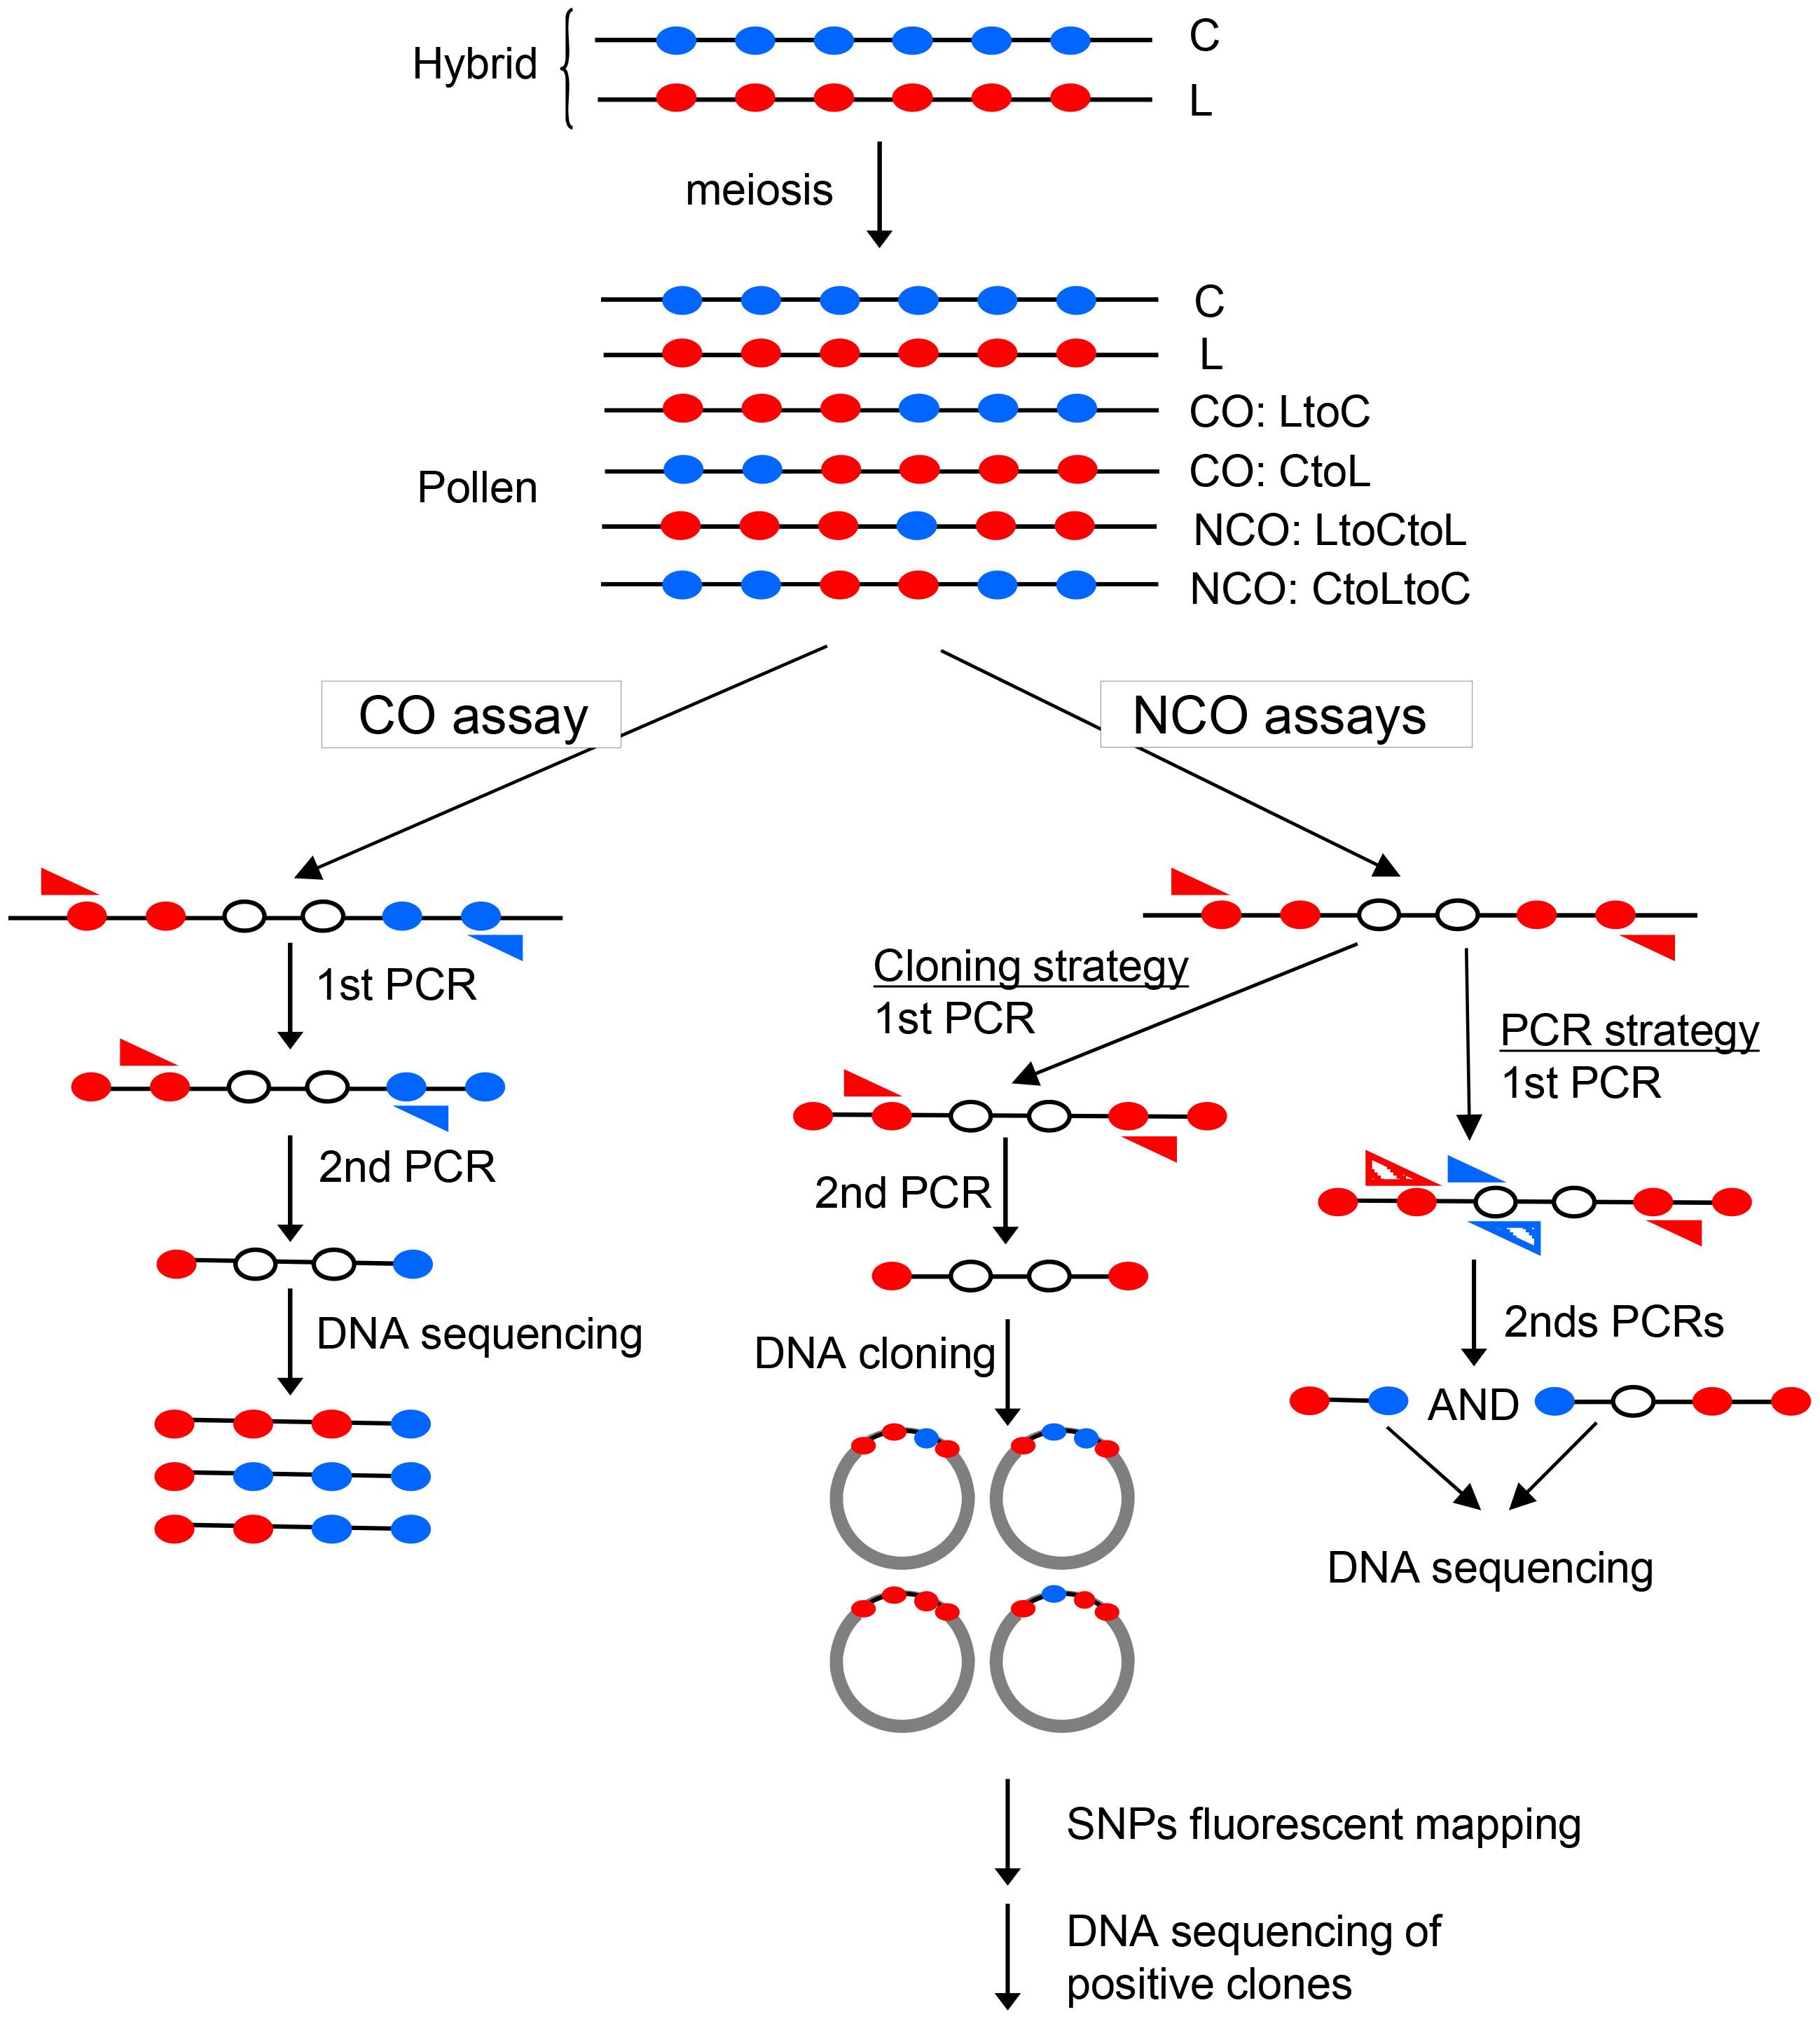 Specific detection of CO and NCO molecules in genomic DNA extracted from pollen.